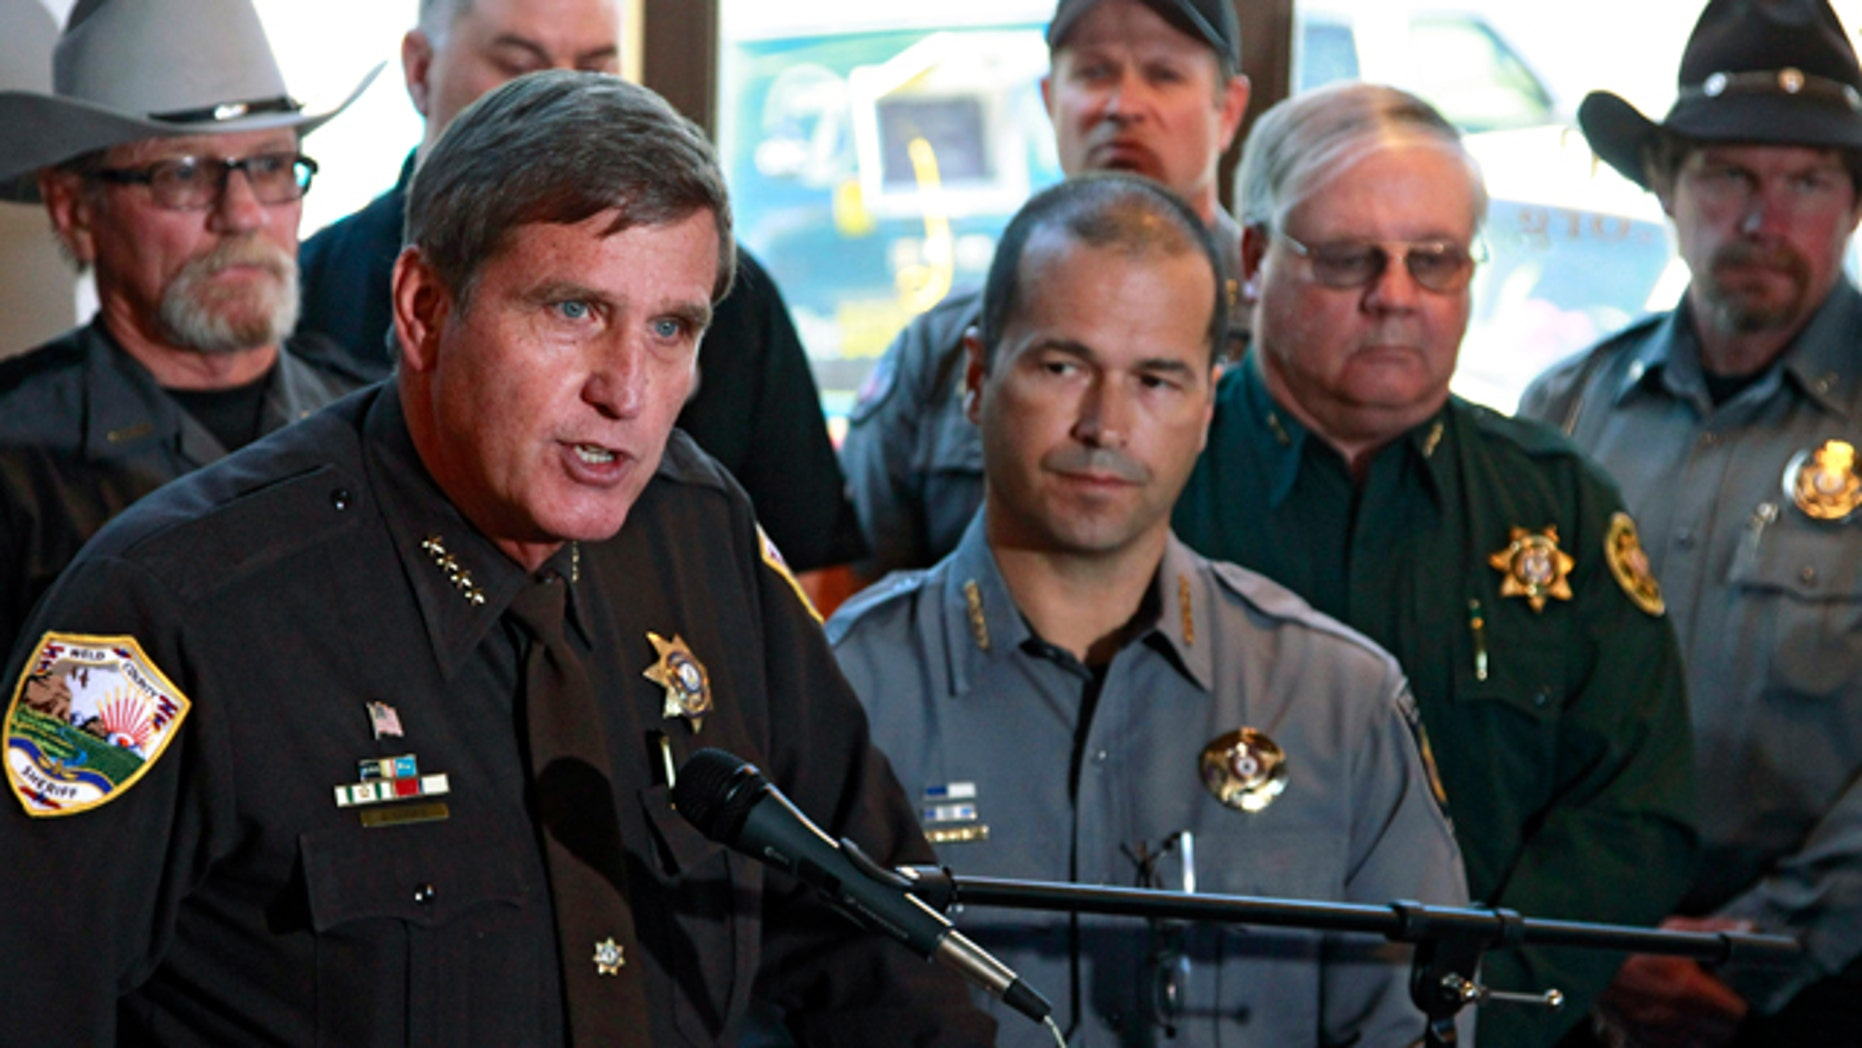 May 17 2013: Weld County, Colo., Sheriff John Cooke, left, with El Paso County Sheriff Terry Maketa, center right, and other sheriffs standing behind him, speaks during a news conference at which he announced that 54 Colorado sheriffs are filing a federal civil lawsuit against two gun control bills passed by the Colorado Legislature, in Denver.